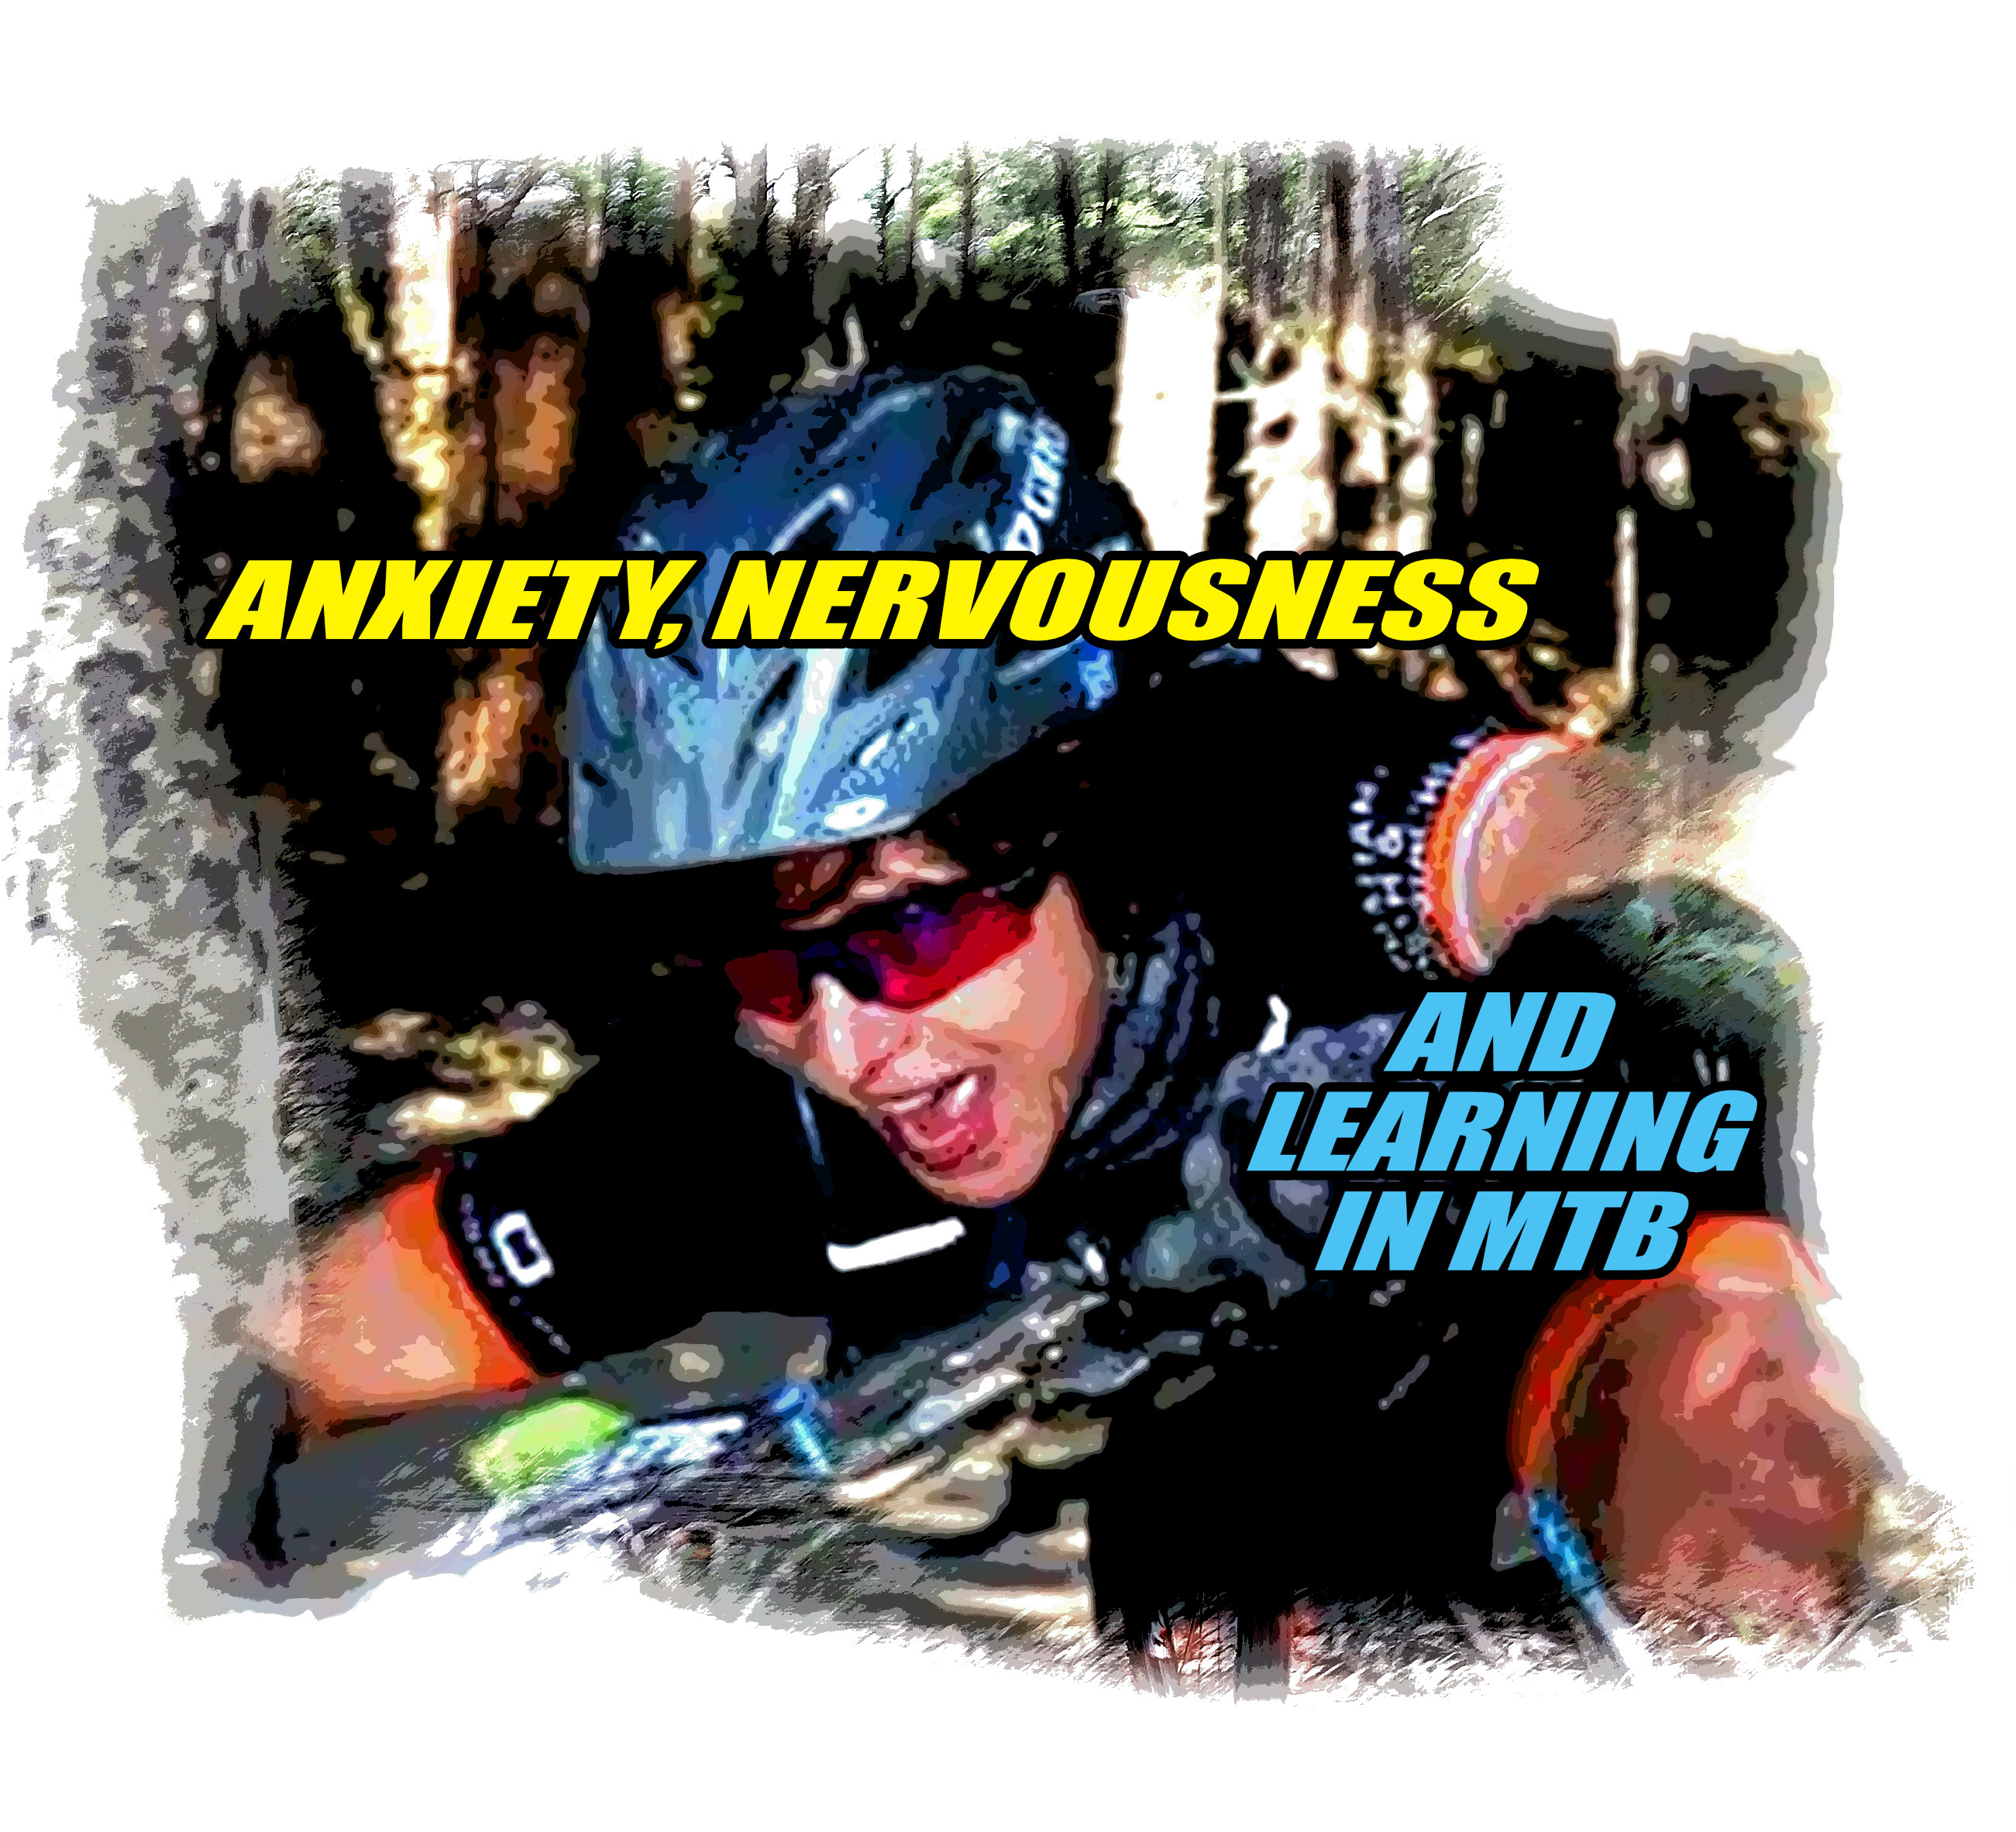 anxiety nervousness learning mtb